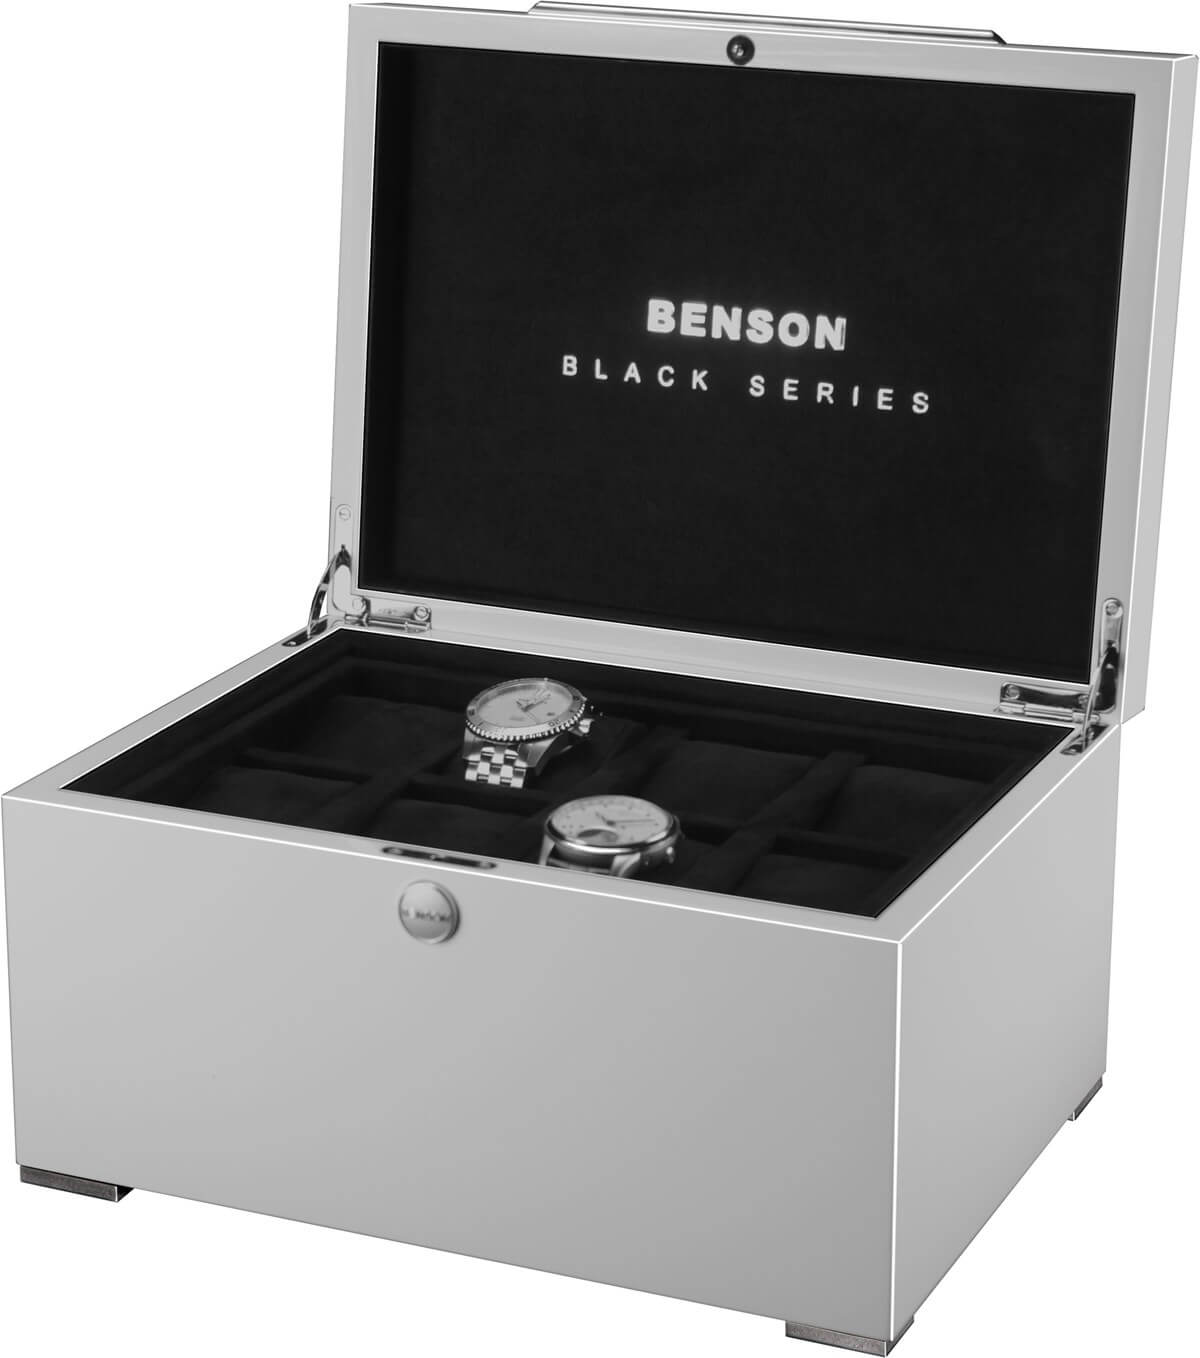 Benson Black Series WB.16.17.W